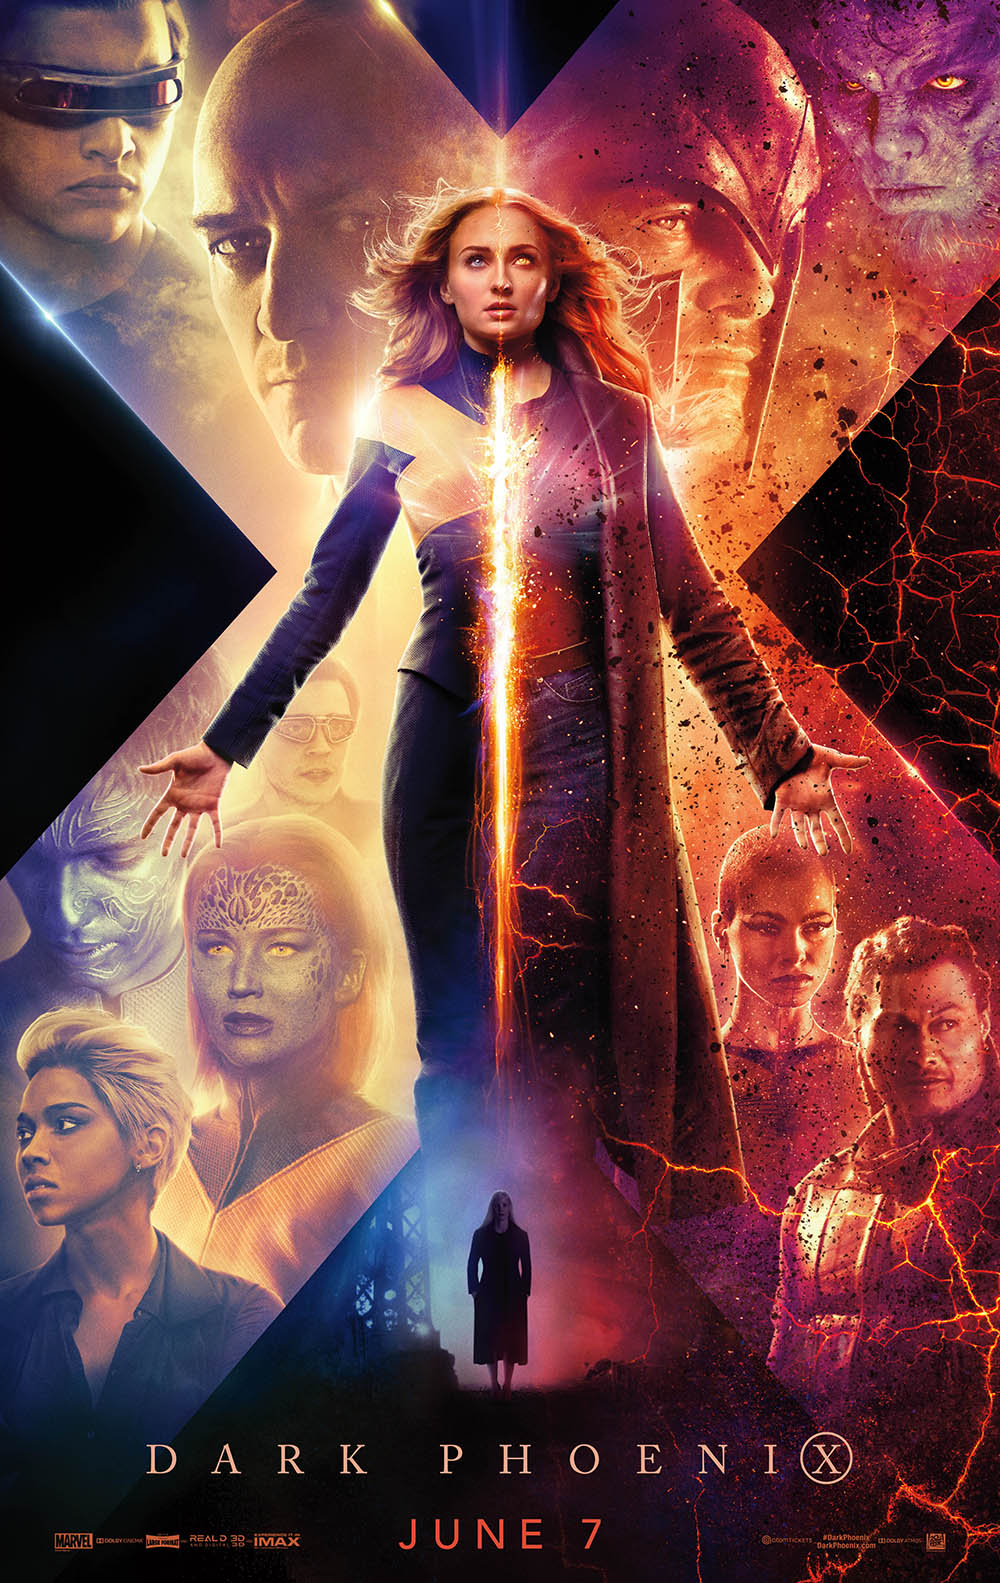 Dark-Phoenix-movie-2019-3d.JPG